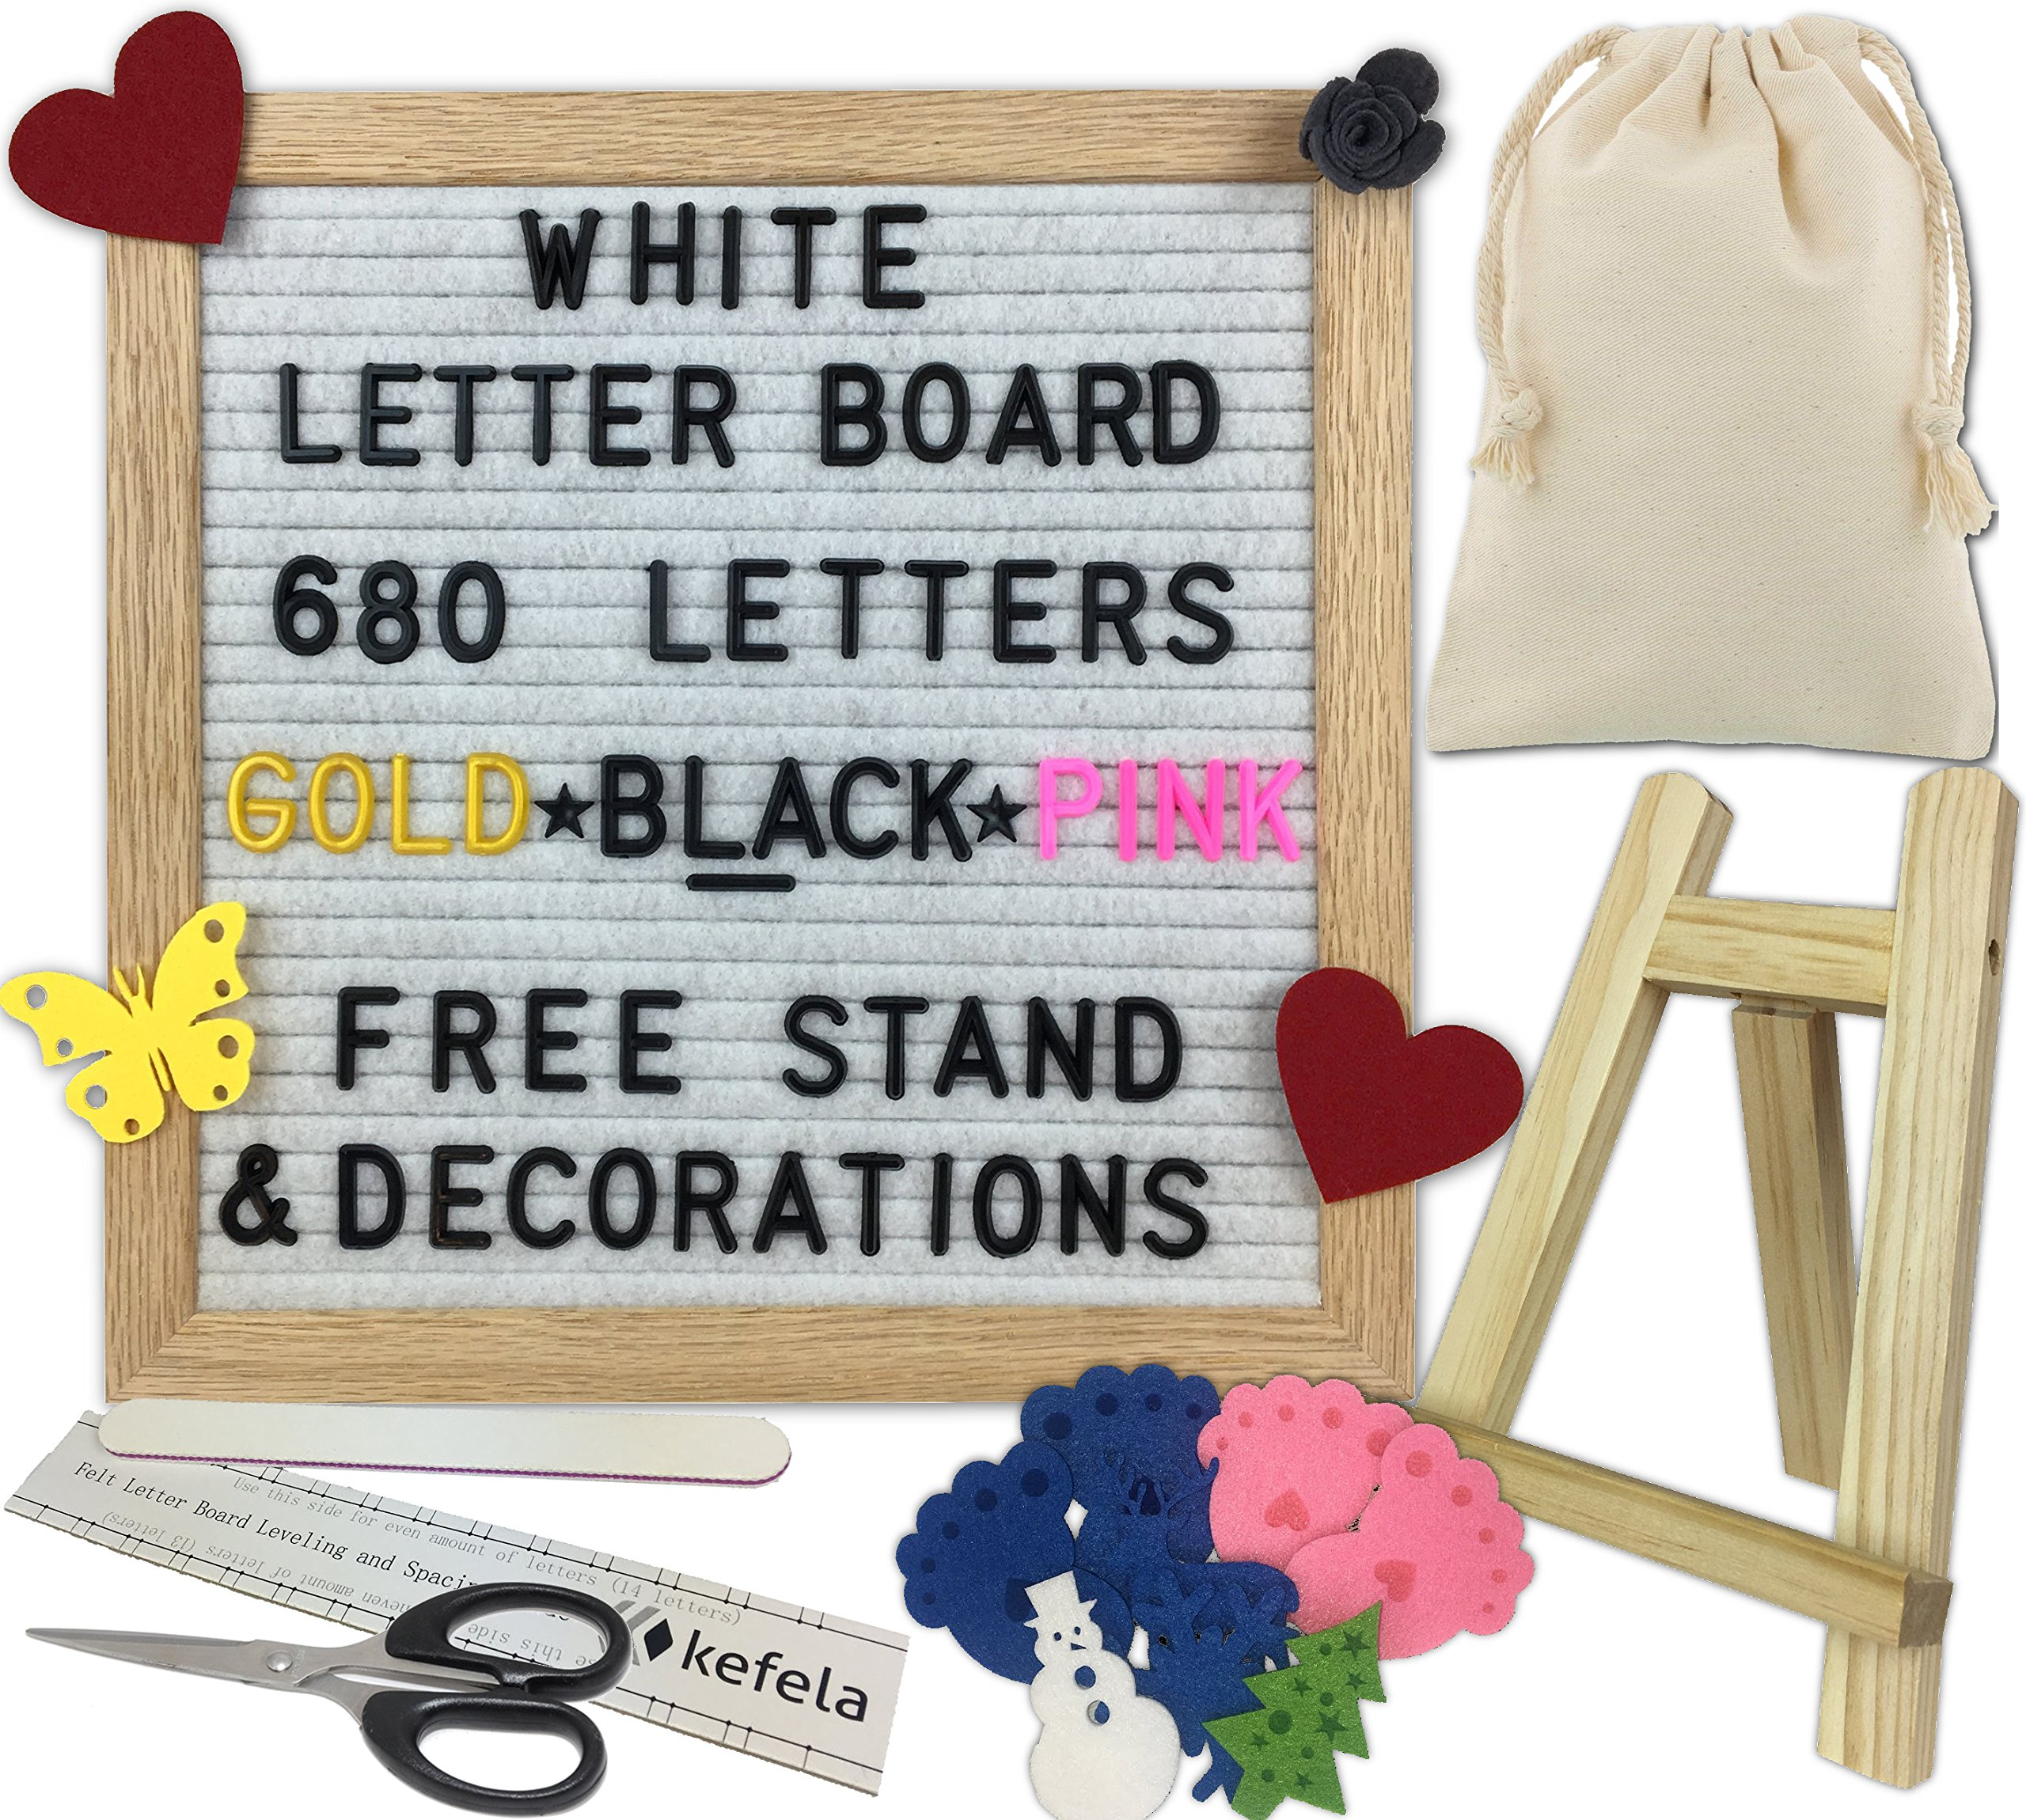 White Felt Letter Board 10x10 - Stand, Decorations, Bag, Scissors, File, Guide - Vintage Oak Frame & 680 Changeable Black Gold Pink Letters - for Announcements, Gift, Photo Prop, Quotes, Toy, etc.